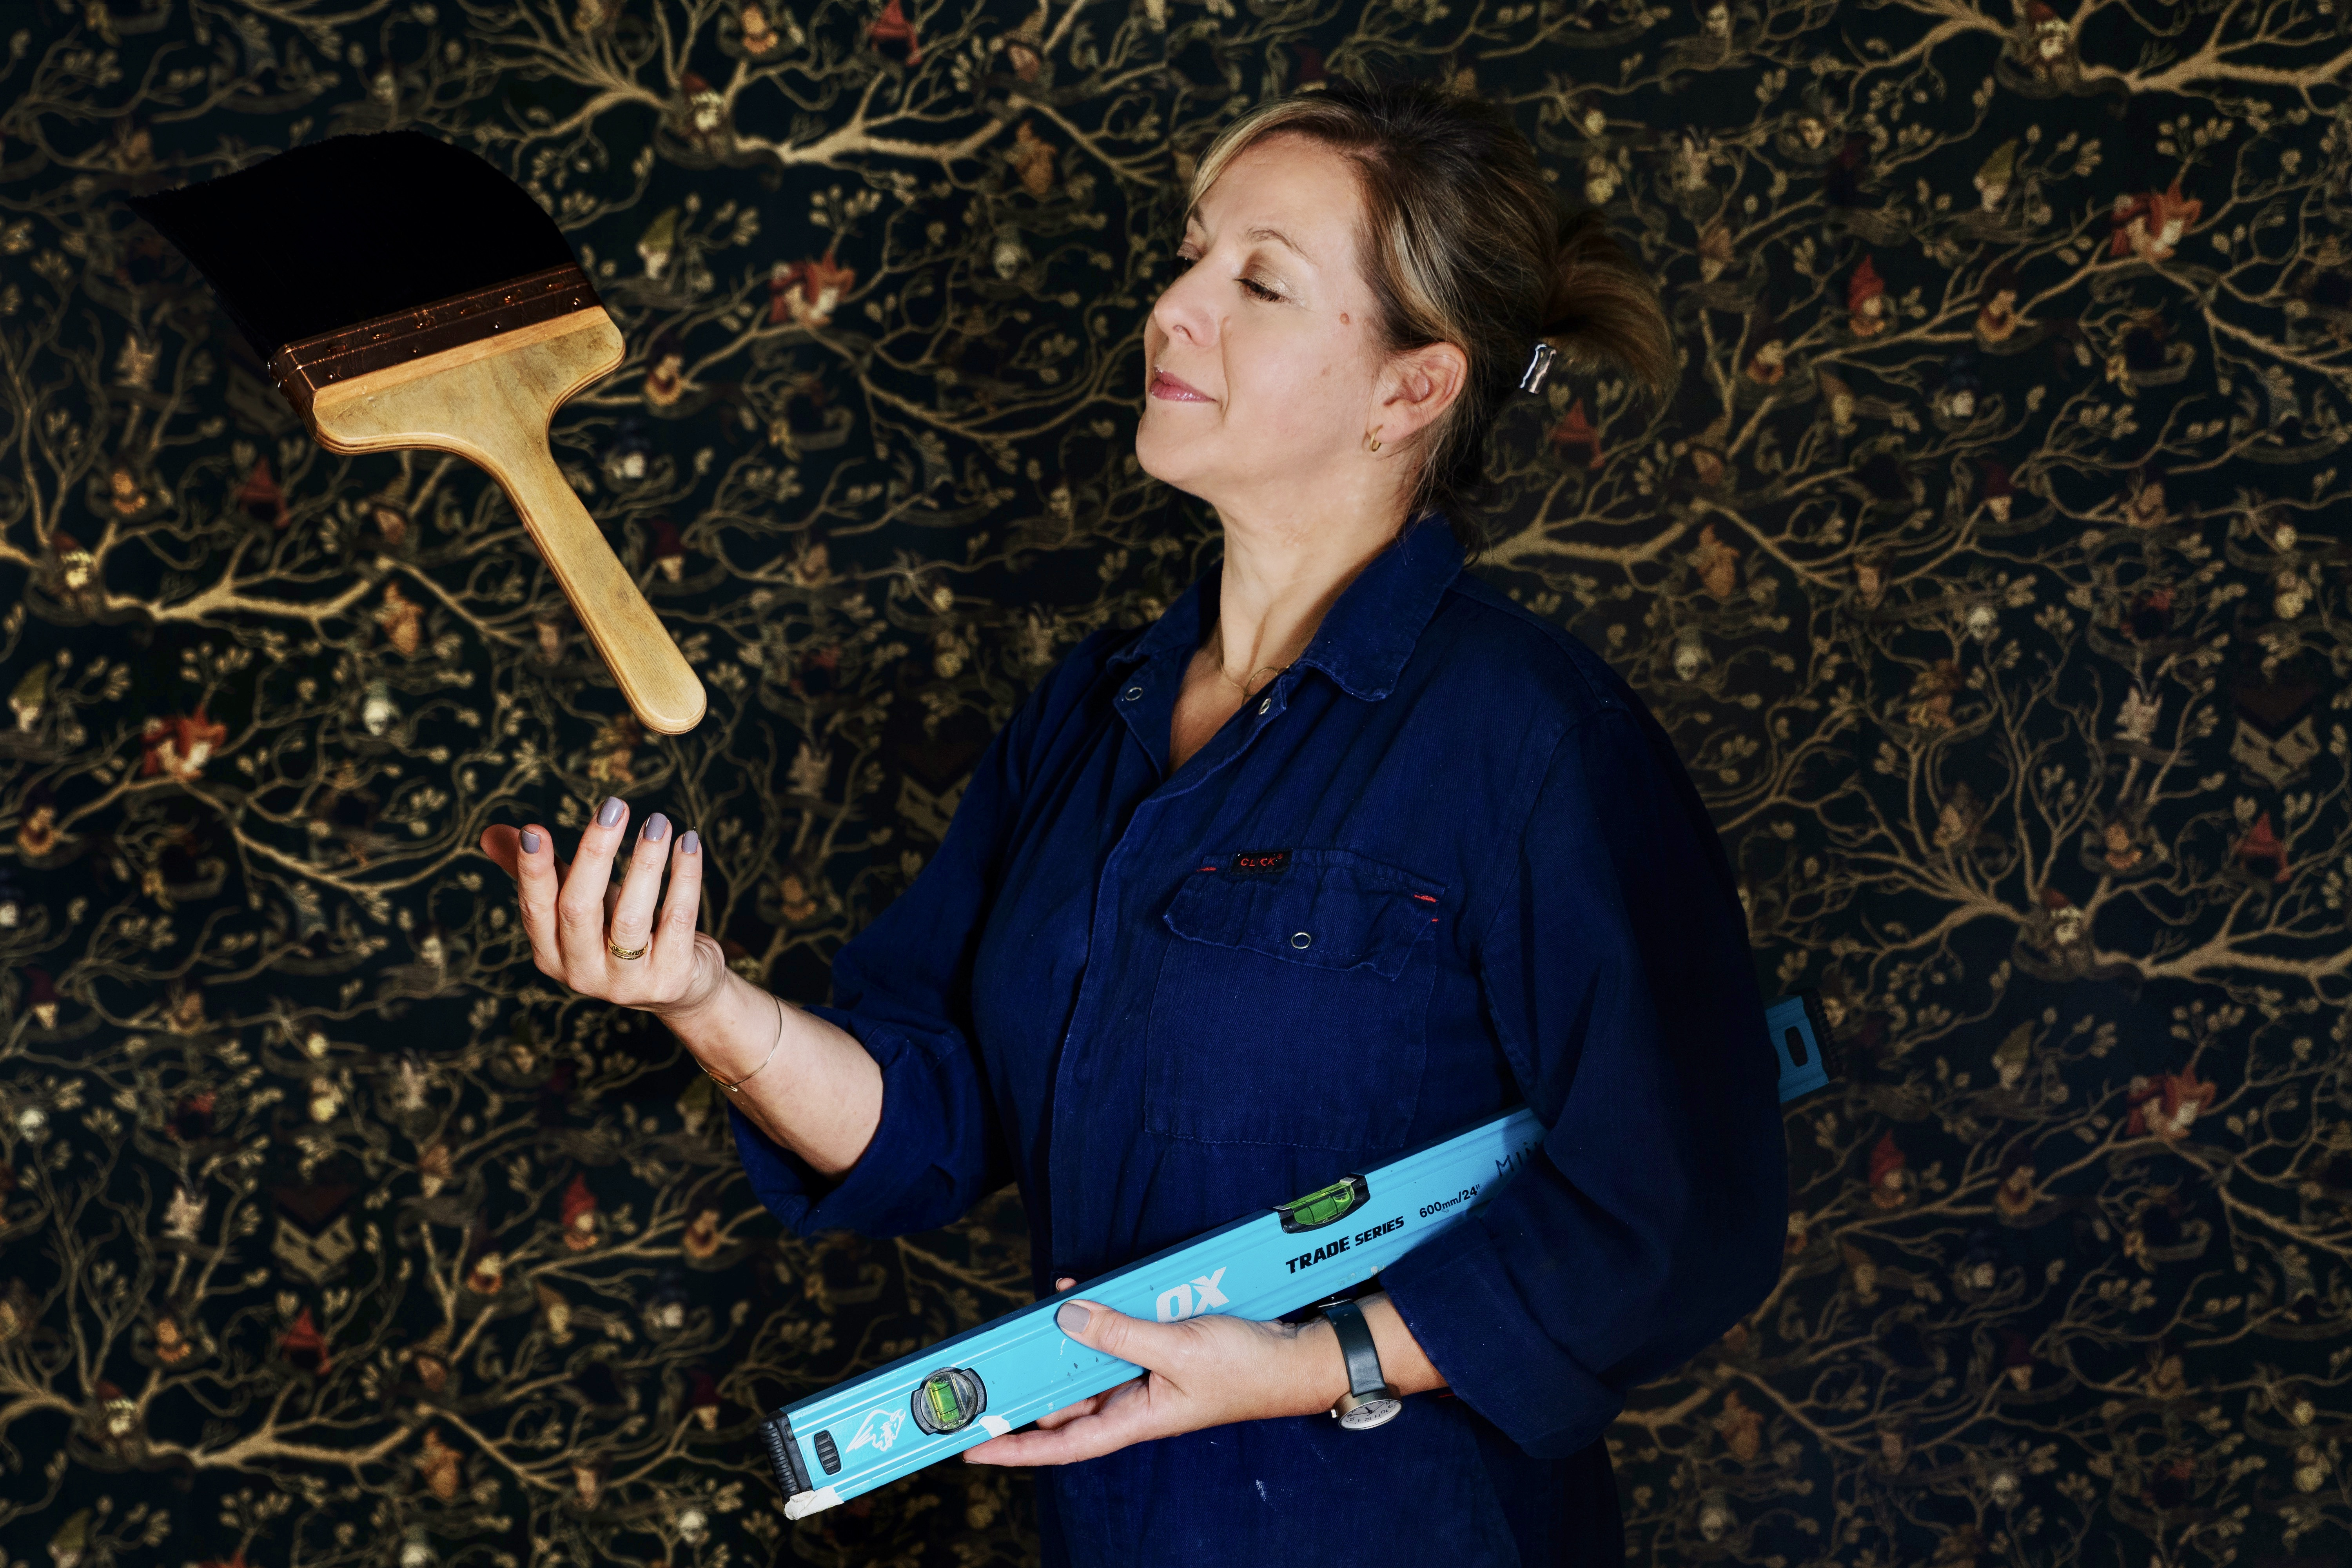 Designer Miraphora Mina, with a paste brush and leveler in hand, looks ready to apply wallpaper to any and every surface!